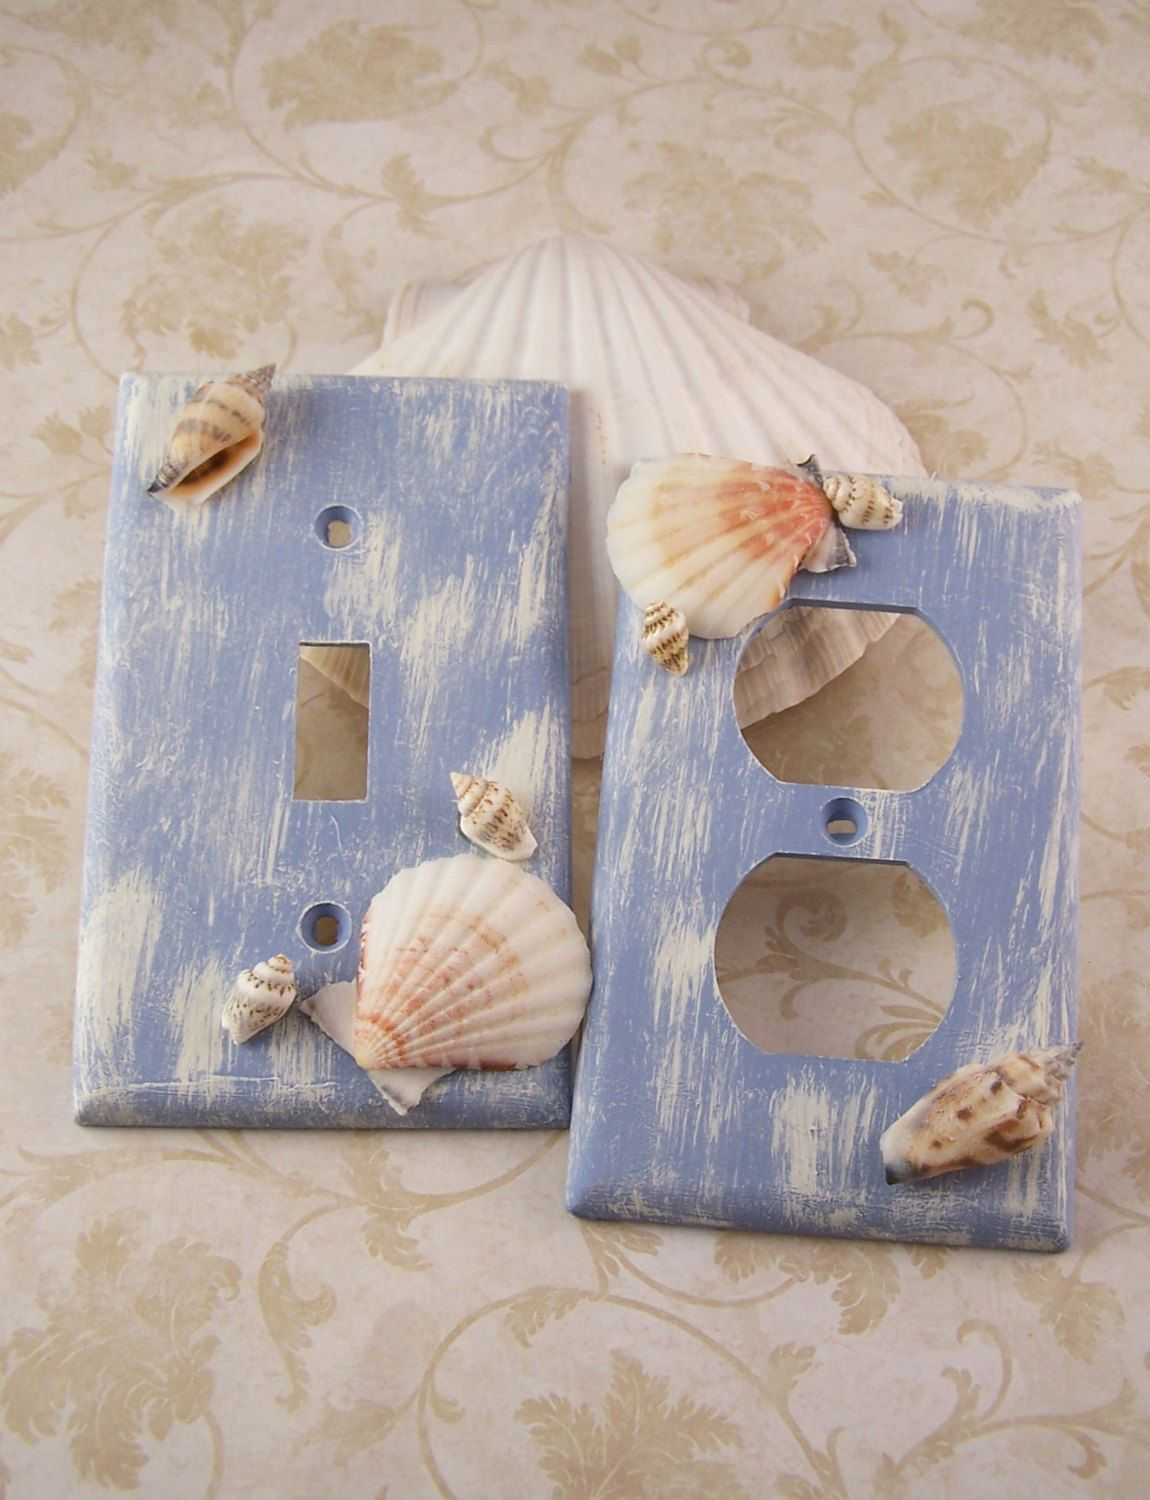 Seashell And Seaglass Encrusted Single Light Switch Plate Cover - Bathroom dimmer light switch